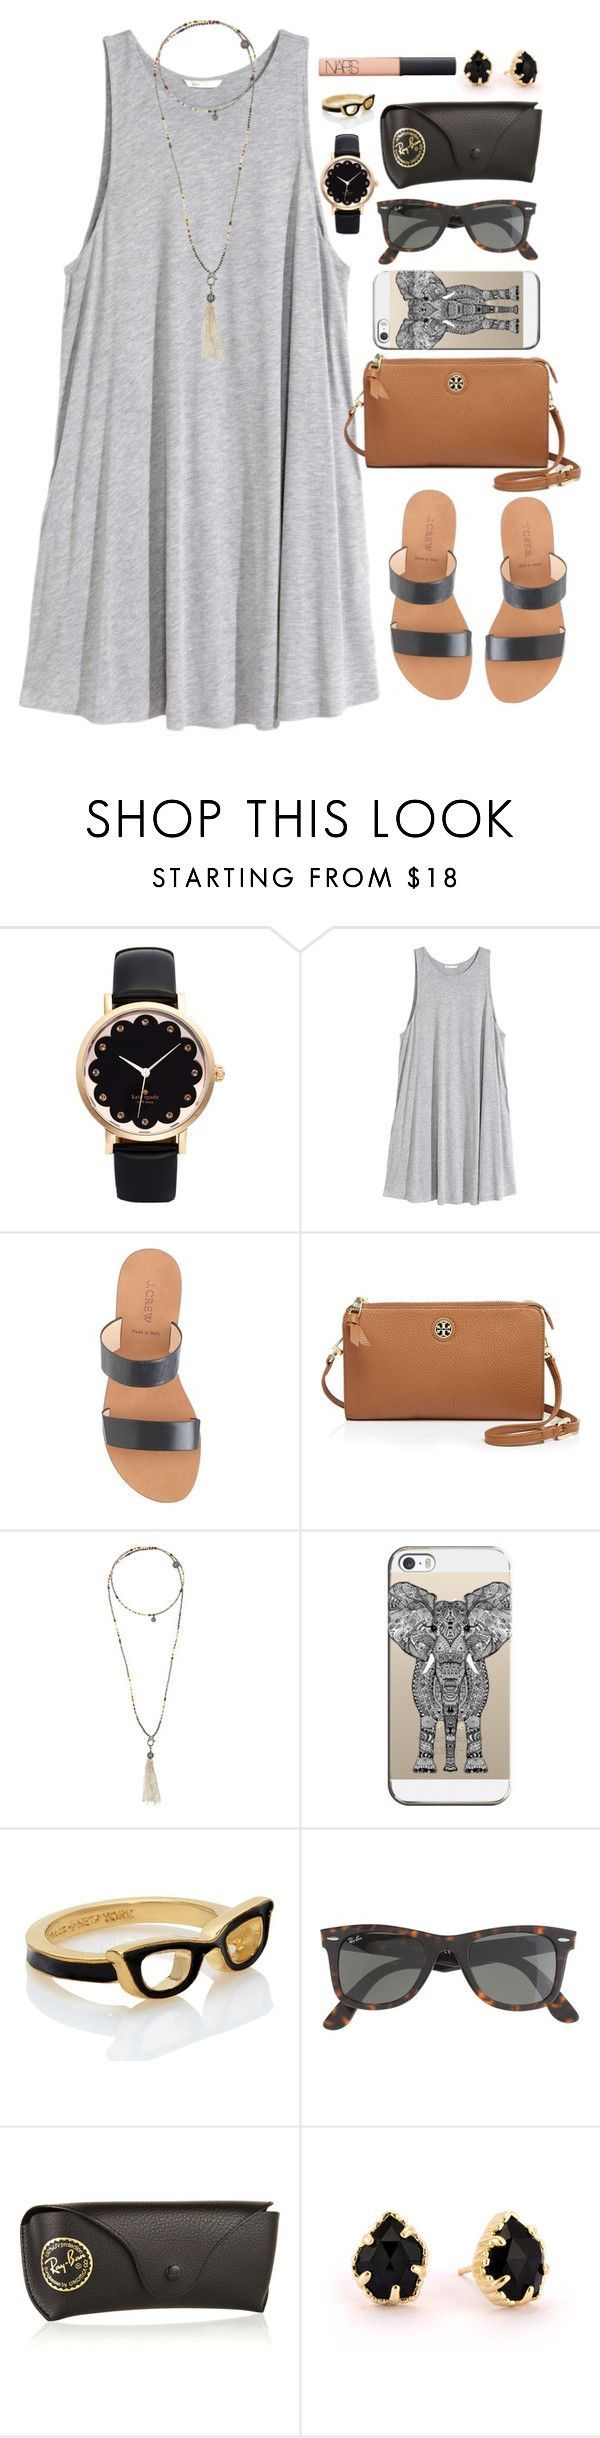 Untitled #879 by julesnewkirk ❤ liked on Polyvore featuring Kate Spade, H&M, J.Crew, Tory Burch, Bettina Duncan, Casetify, Ray-Ban, Kendra Scott, NARS Cosmetics and julesbestsets http://feedproxy.google.com/Womenglasses2